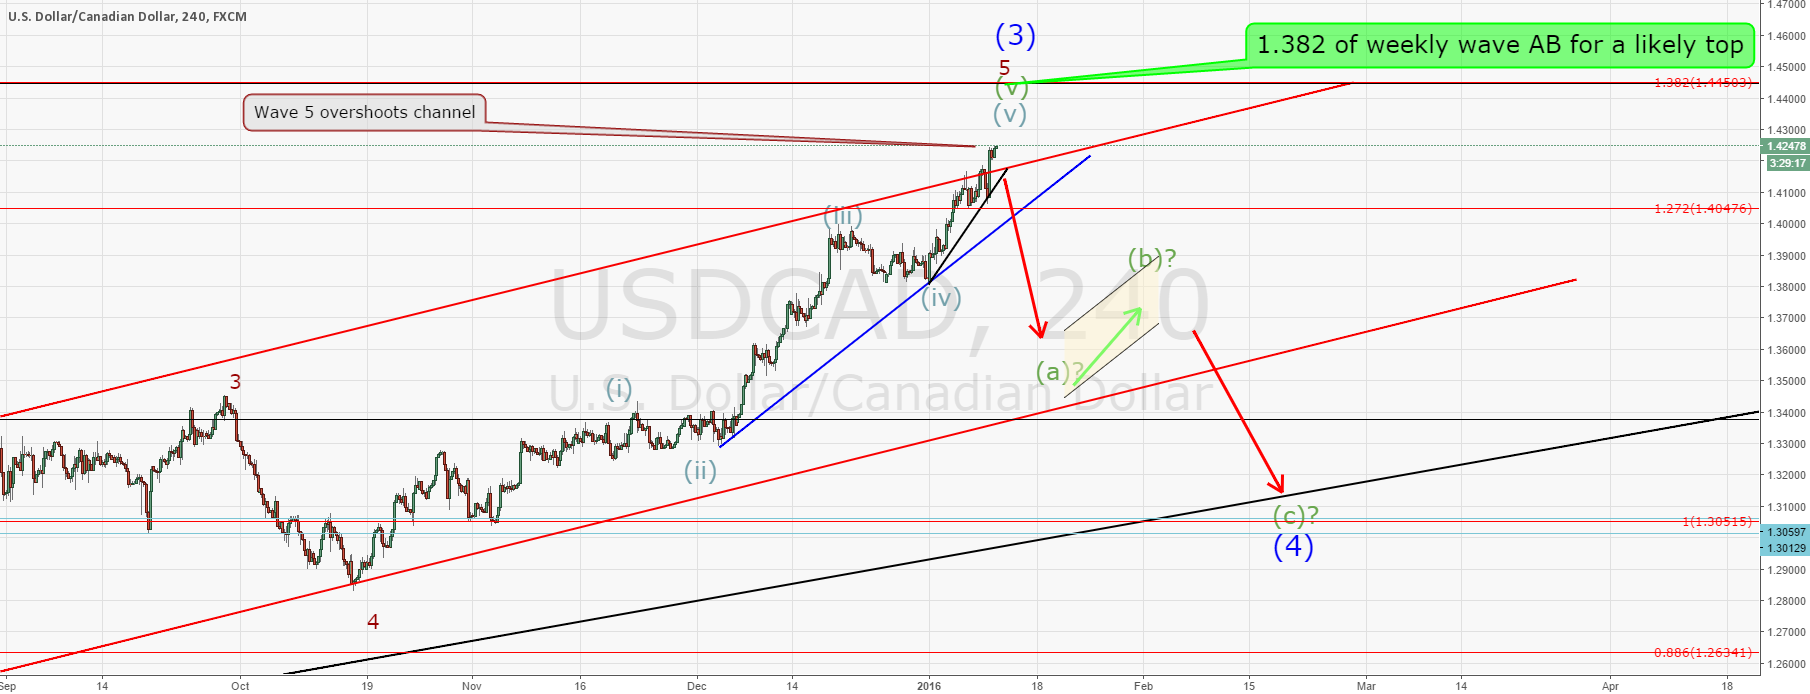 USDCAD extending but the short will follow soon